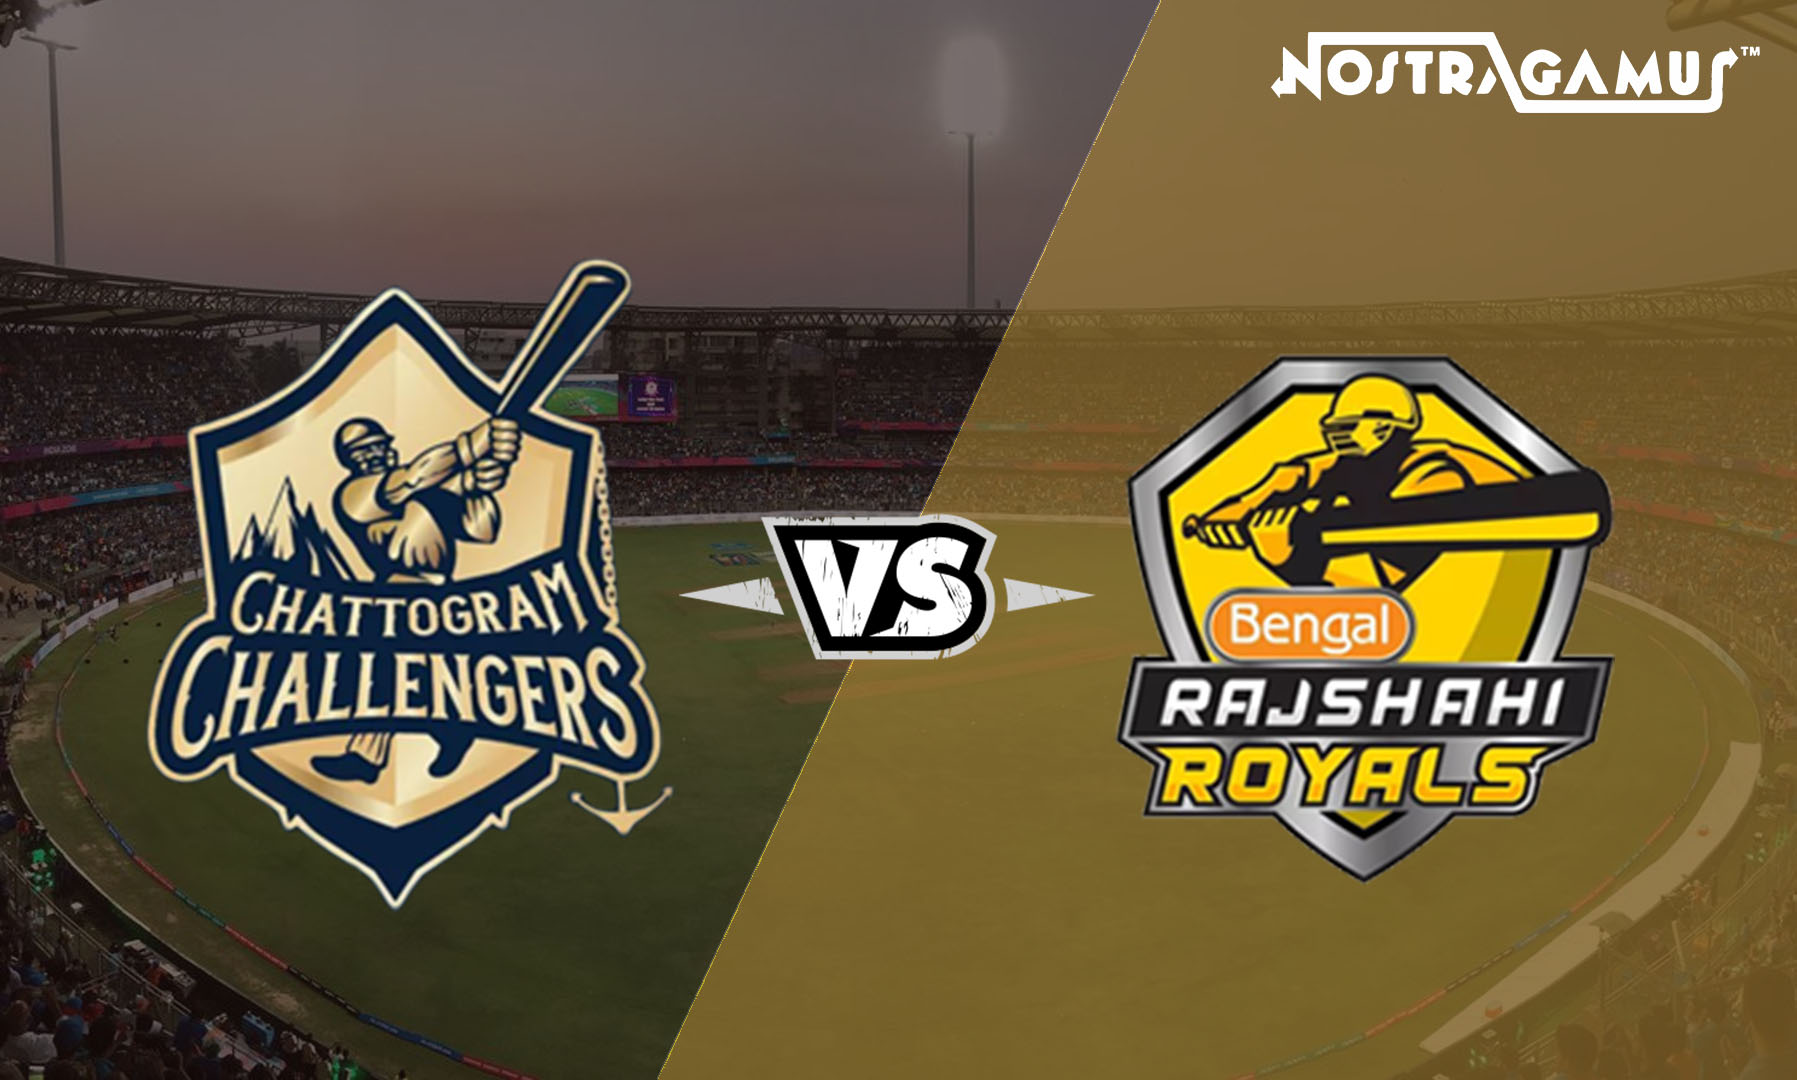 BPL 2019 Match Prediction: Chattogram Challengers vs Rajshahi Royals